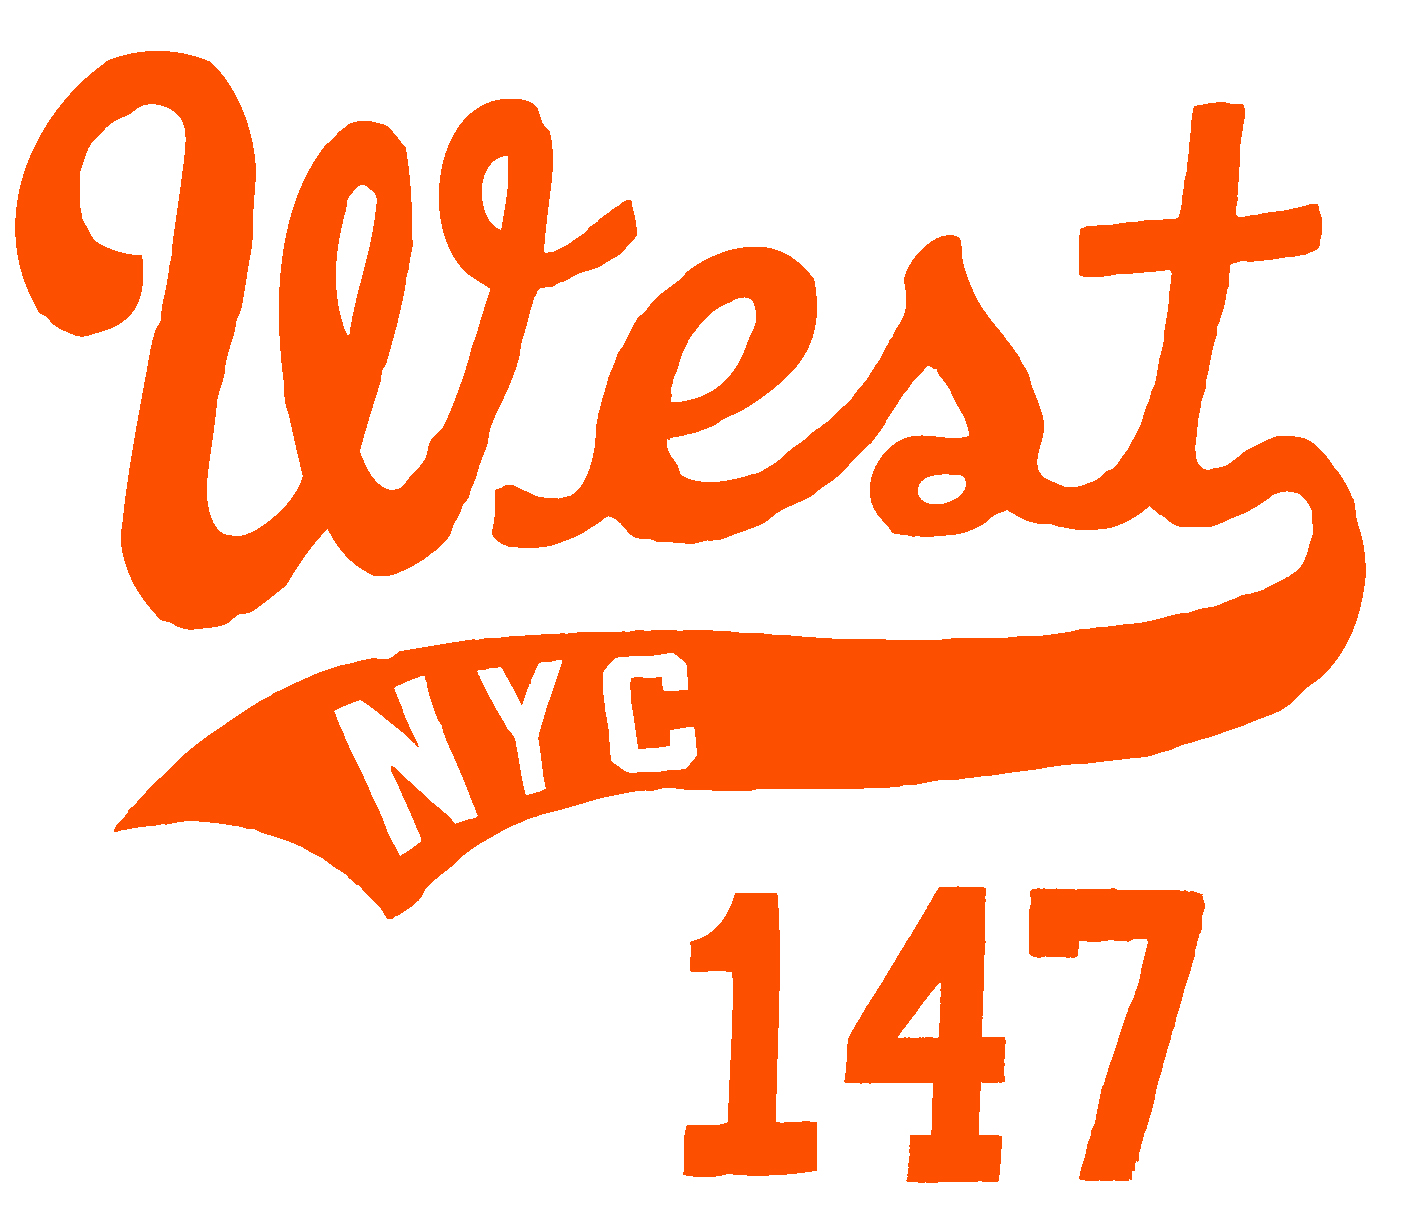 WEST NYC_a0221253_18345852.png